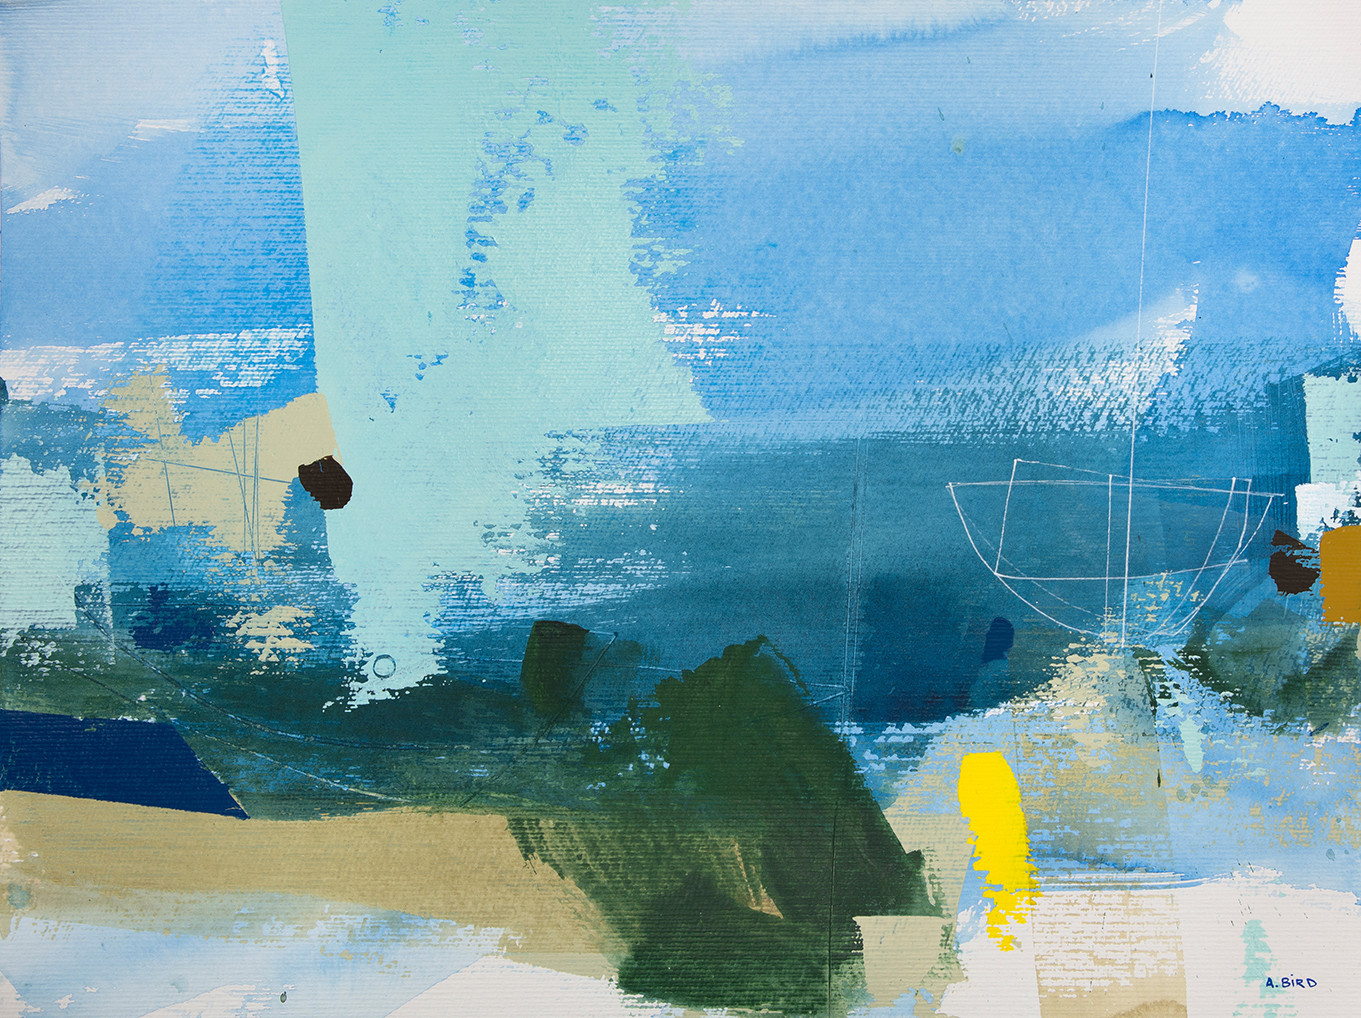 <span class=&#34;link fancybox-details-link&#34;><a href=&#34;/artists/77-andrew-bird/works/5244-andrew-bird-dune-walk-2017-18/&#34;>View Detail Page</a></span><div class=&#34;artist&#34;><strong>Andrew Bird</strong></div> 1969 – <div class=&#34;title&#34;><em>Dune Walk</em>, 2017/18</div> <div class=&#34;signed_and_dated&#34;>signed</div> <div class=&#34;medium&#34;>acrylic on paper</div> <div class=&#34;dimensions&#34;>h 36 x w 48 cm<br /> 14 1/8 x 18 7/8 in</div><div class=&#34;copyright_line&#34;>OwnArt: £ 69.50 x 10 Months, 0% APR</div>